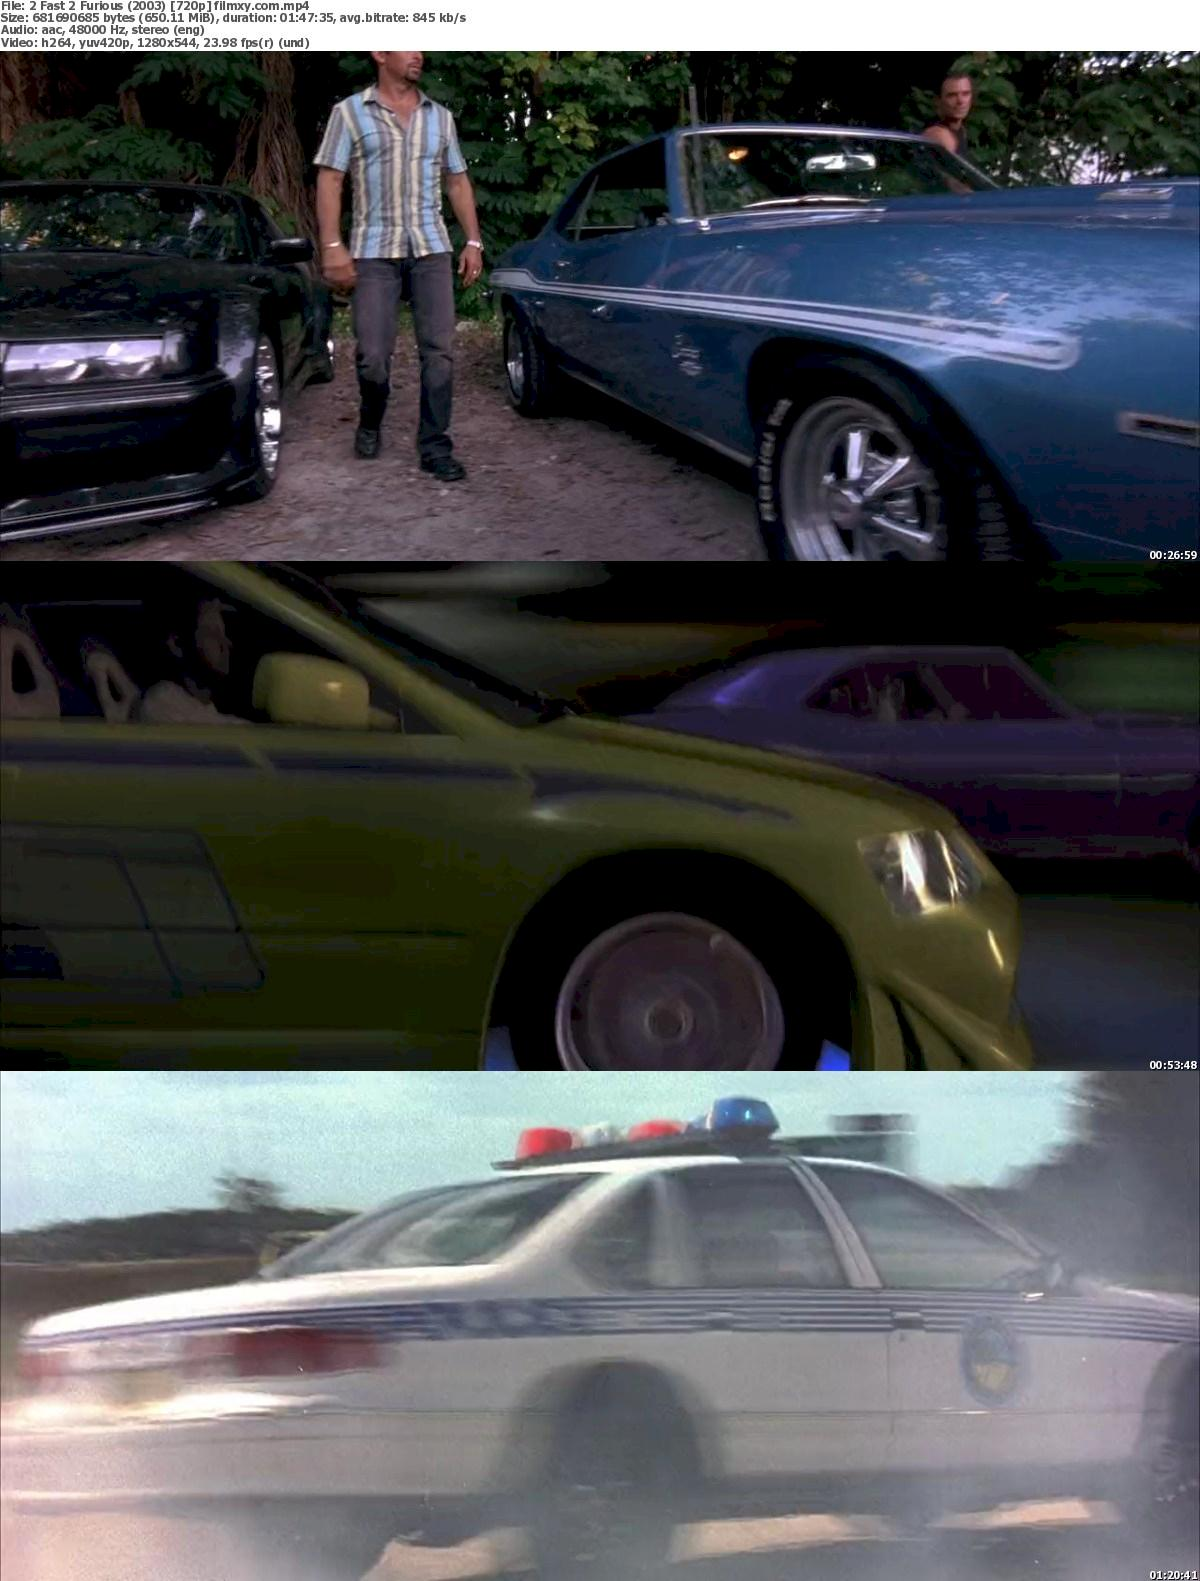 2 Fast 2 Furious (2003) 720p & 1080p Bluray Free Download 720p Screenshot